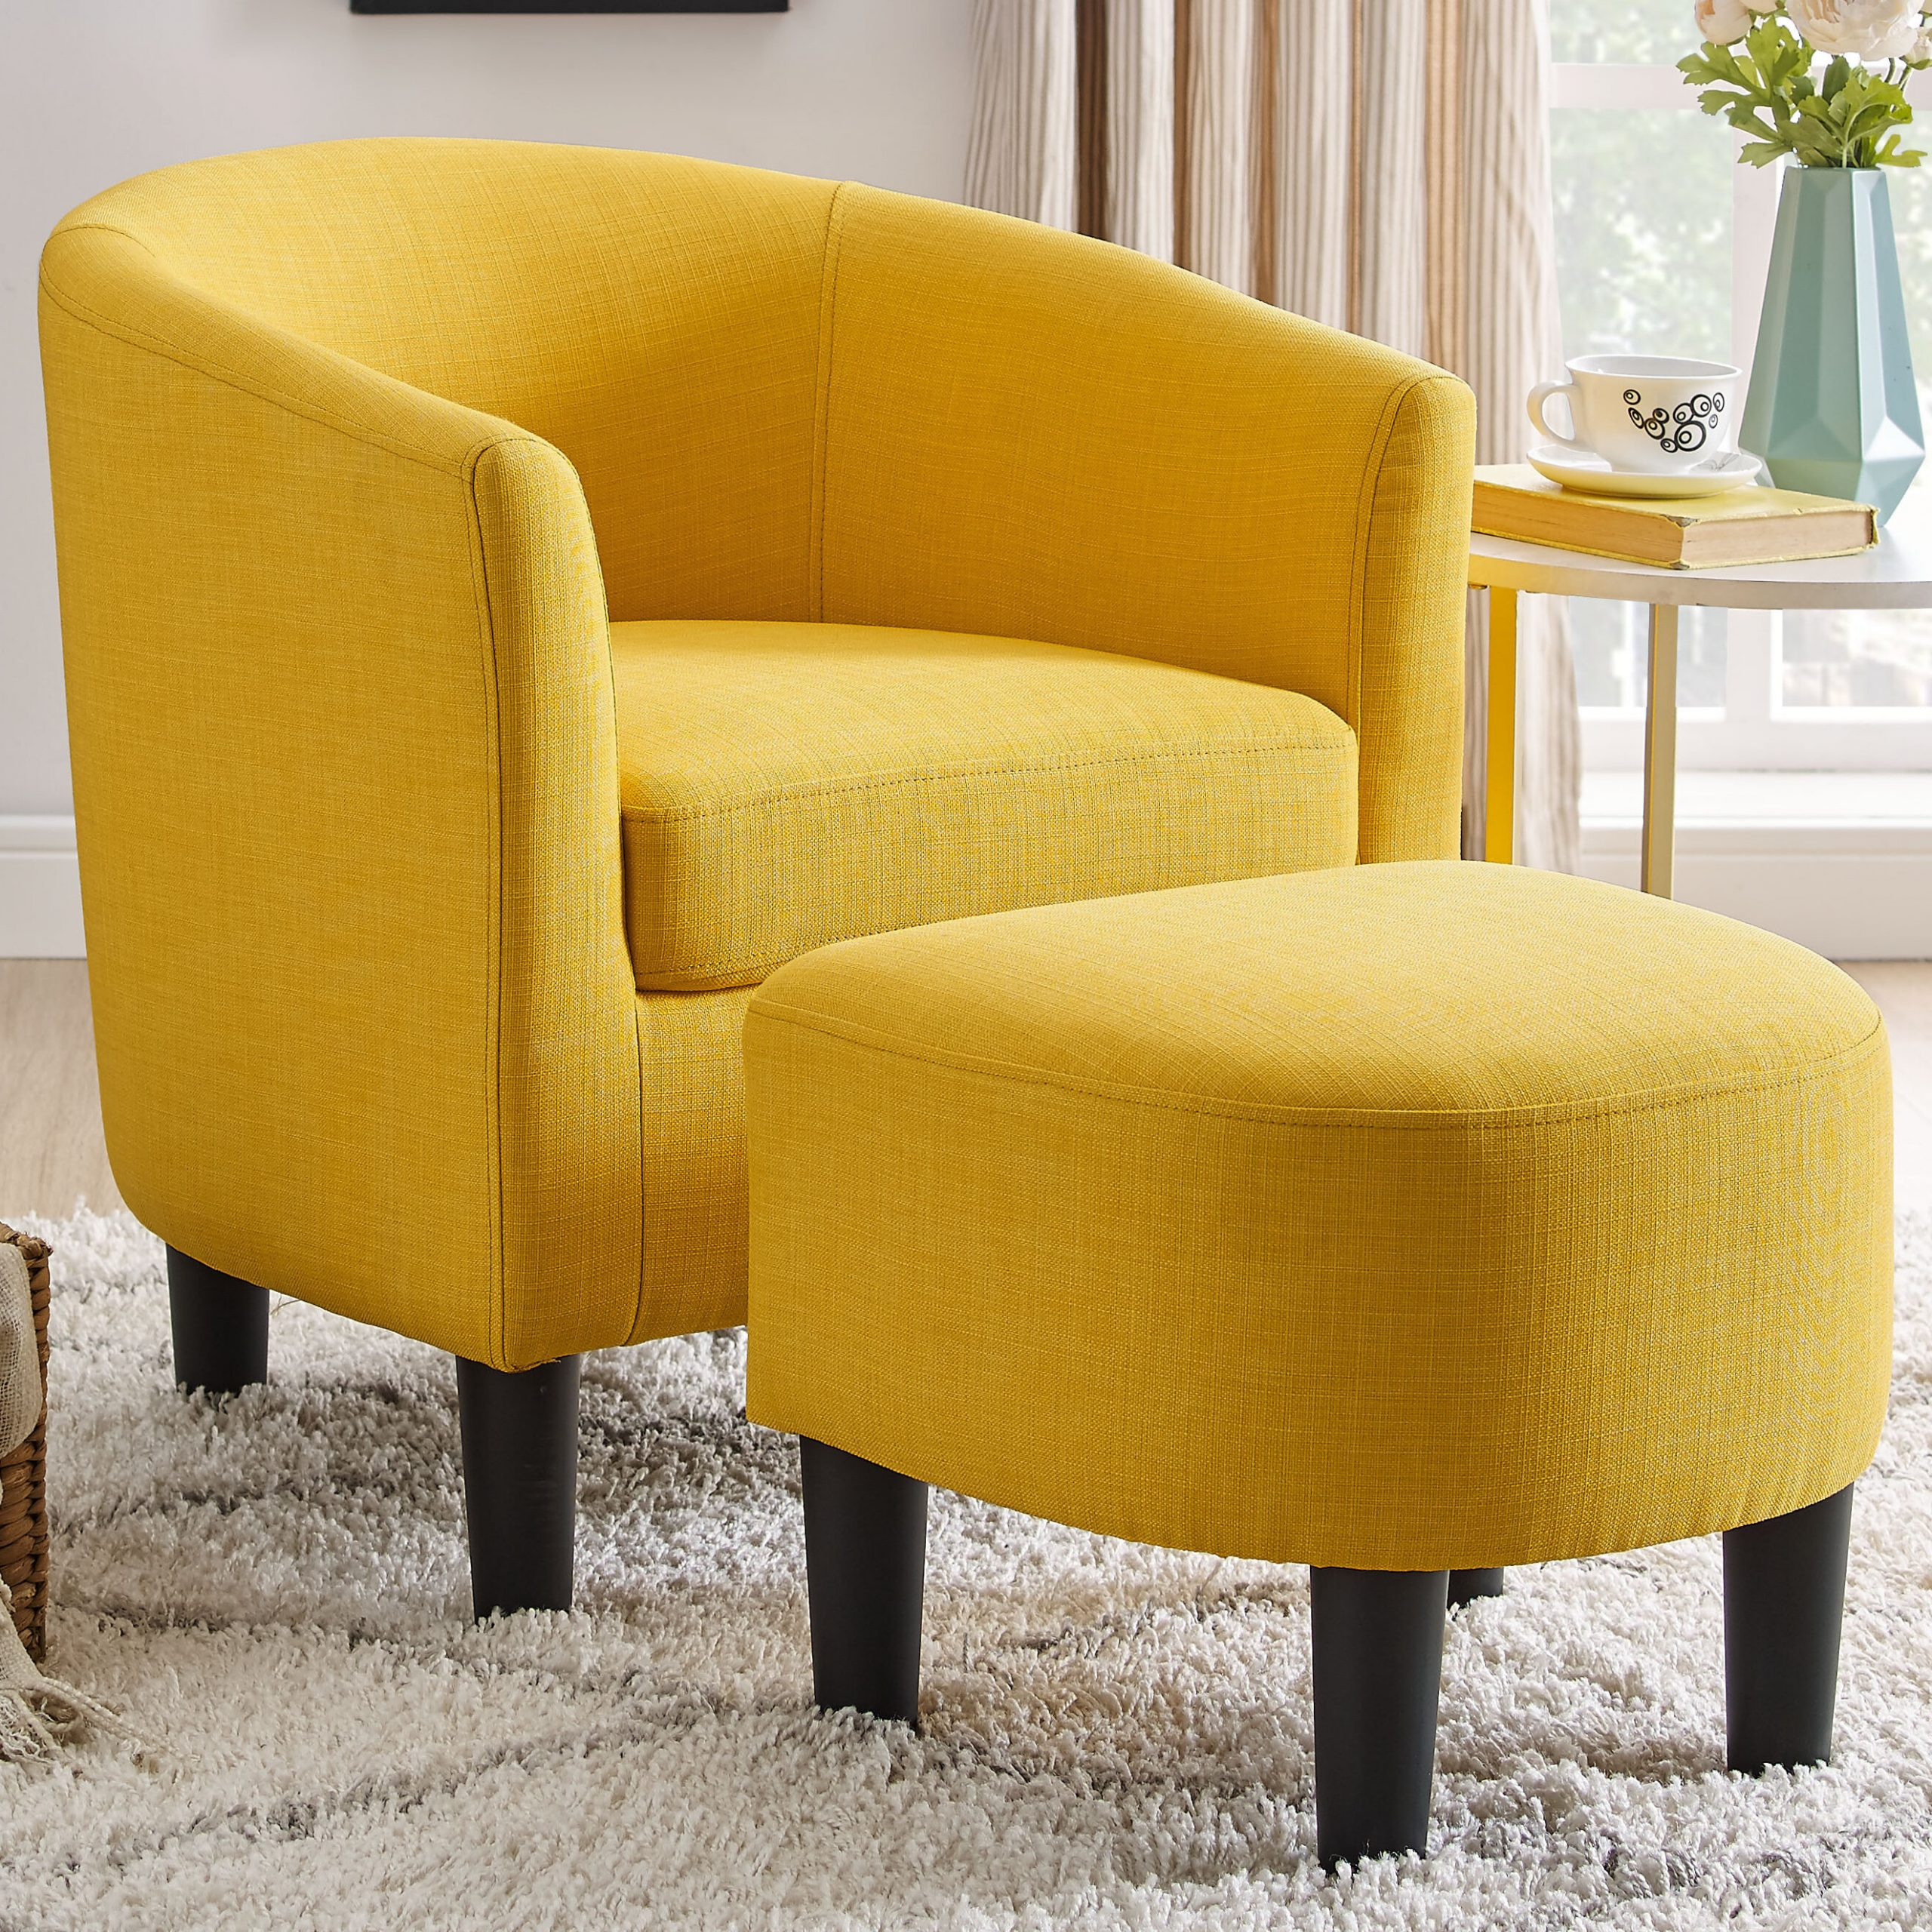 Barrel Yellow Accent Chairs You'Ll Love In 2021 | Wayfair For Jazouli Linen Barrel Chairs And Ottoman (View 3 of 15)